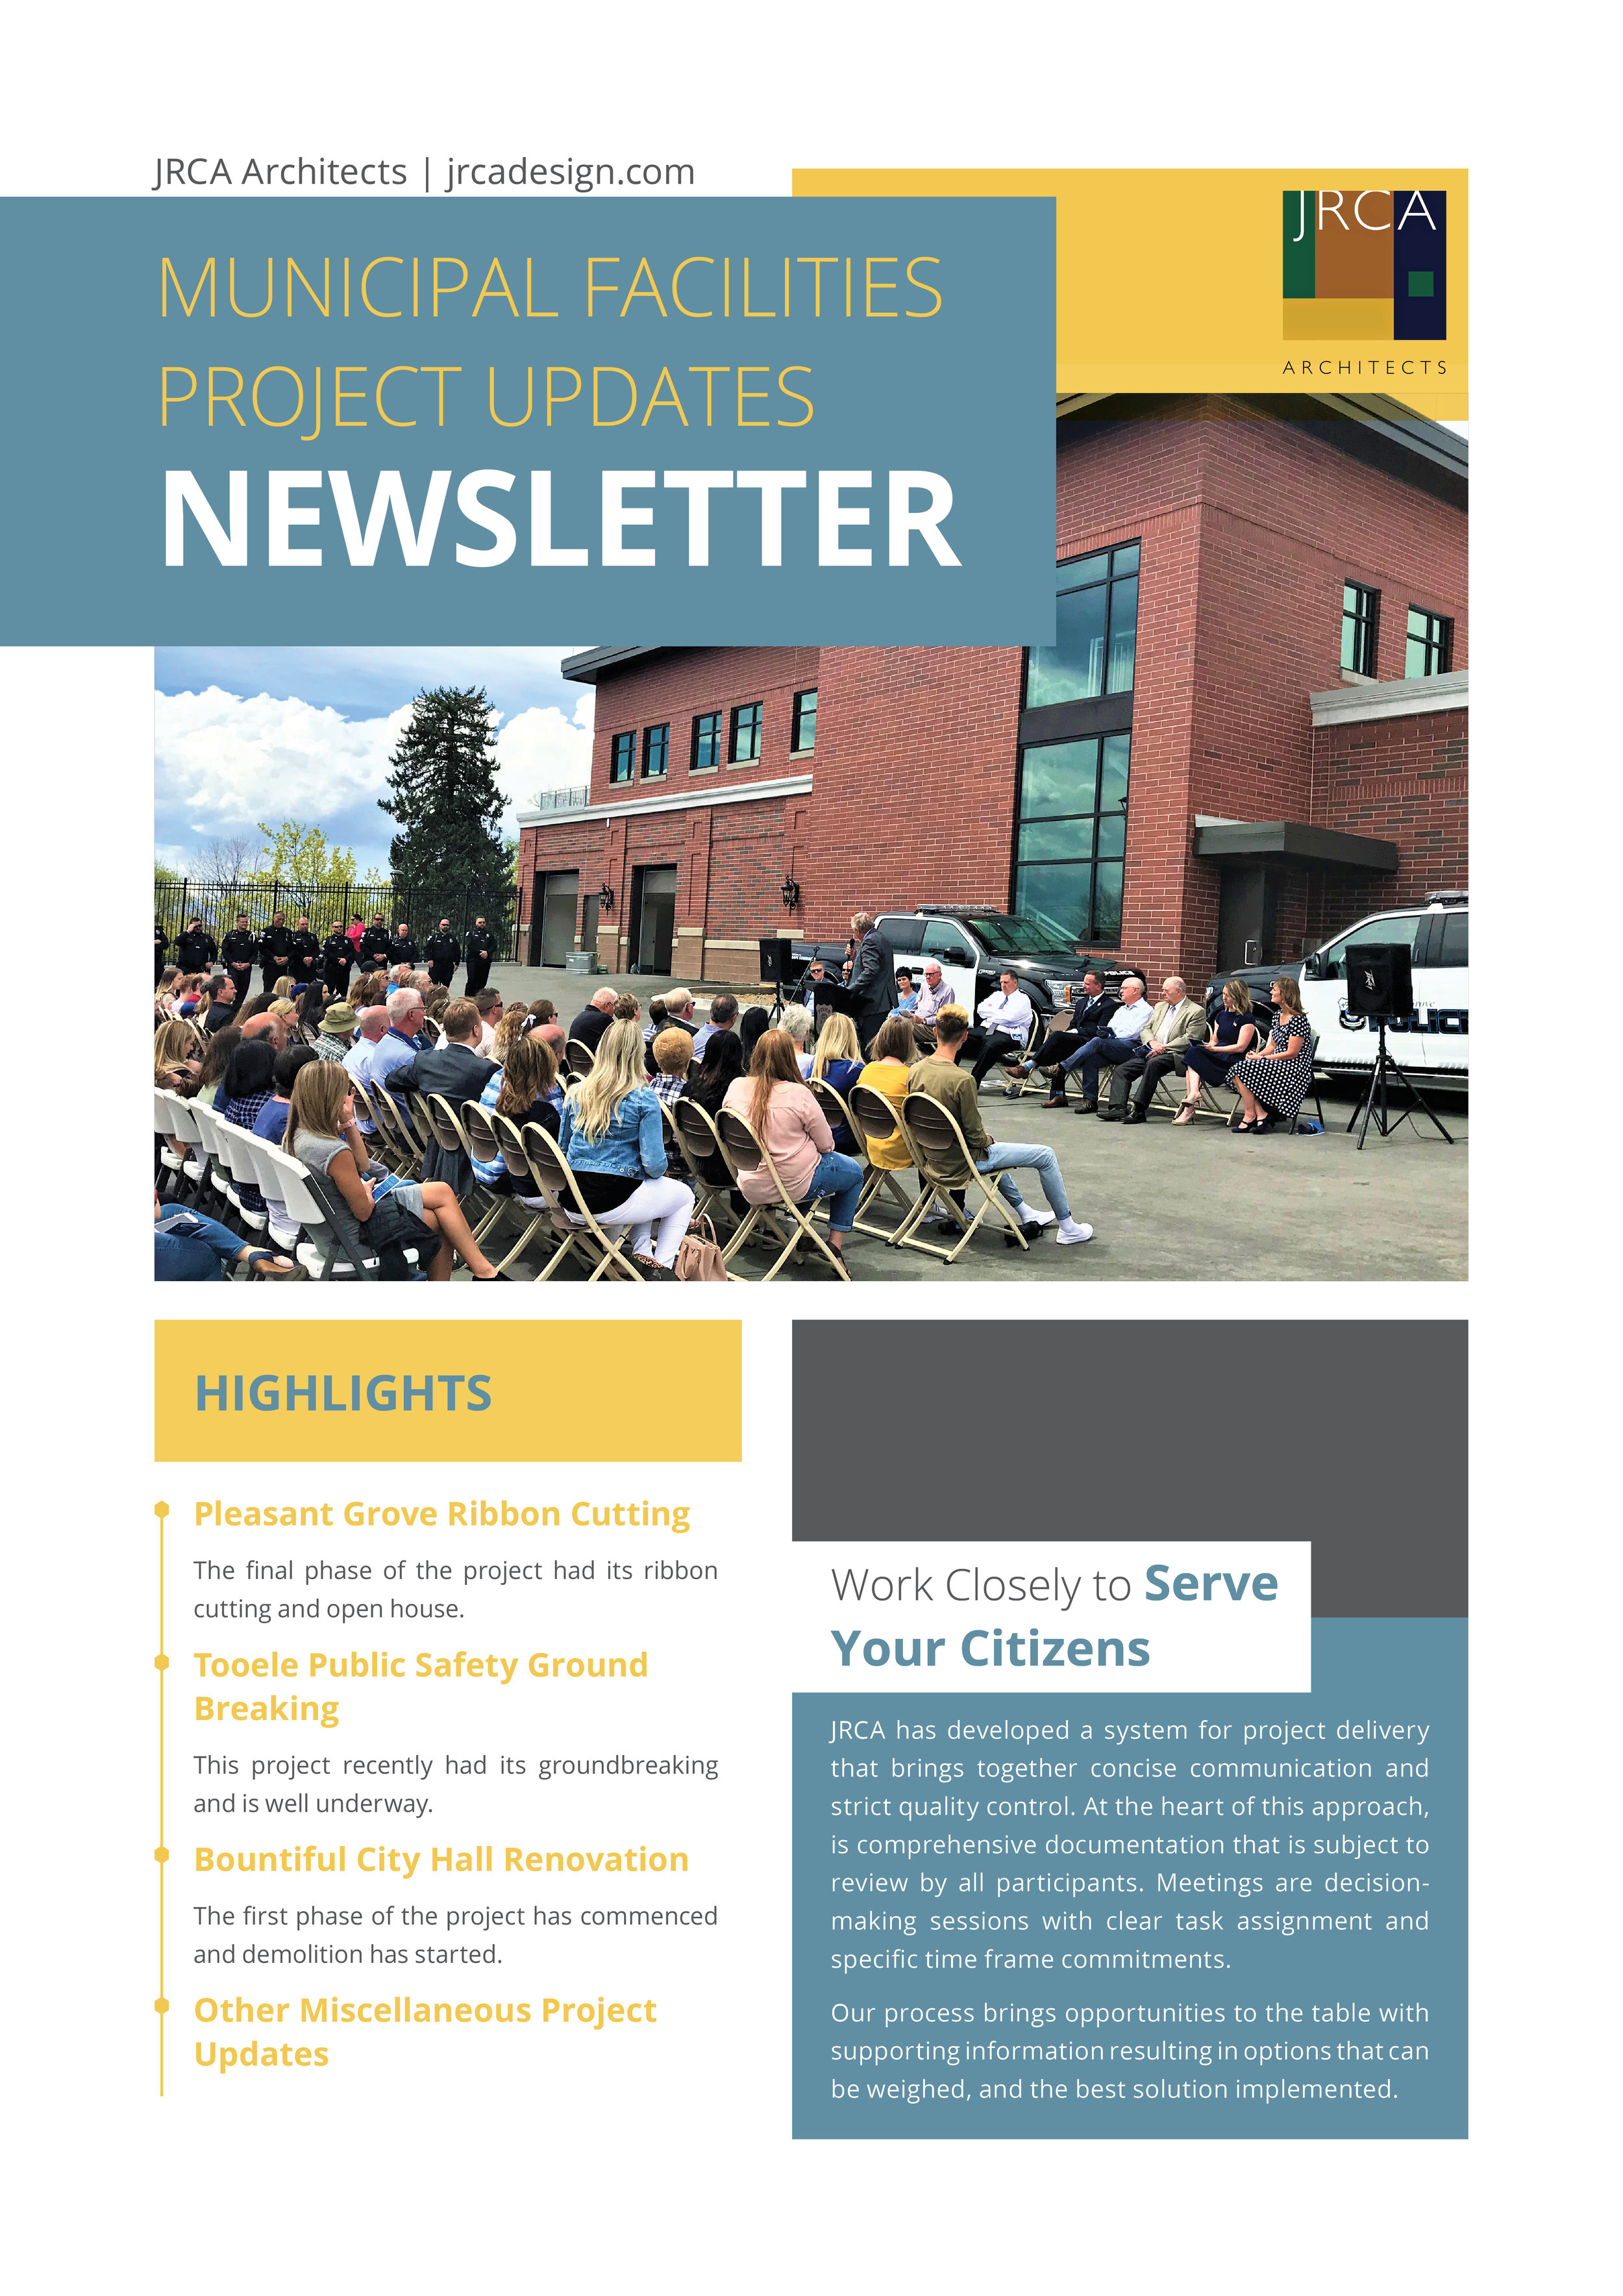 Municipal Facilities Newsletter.jpg